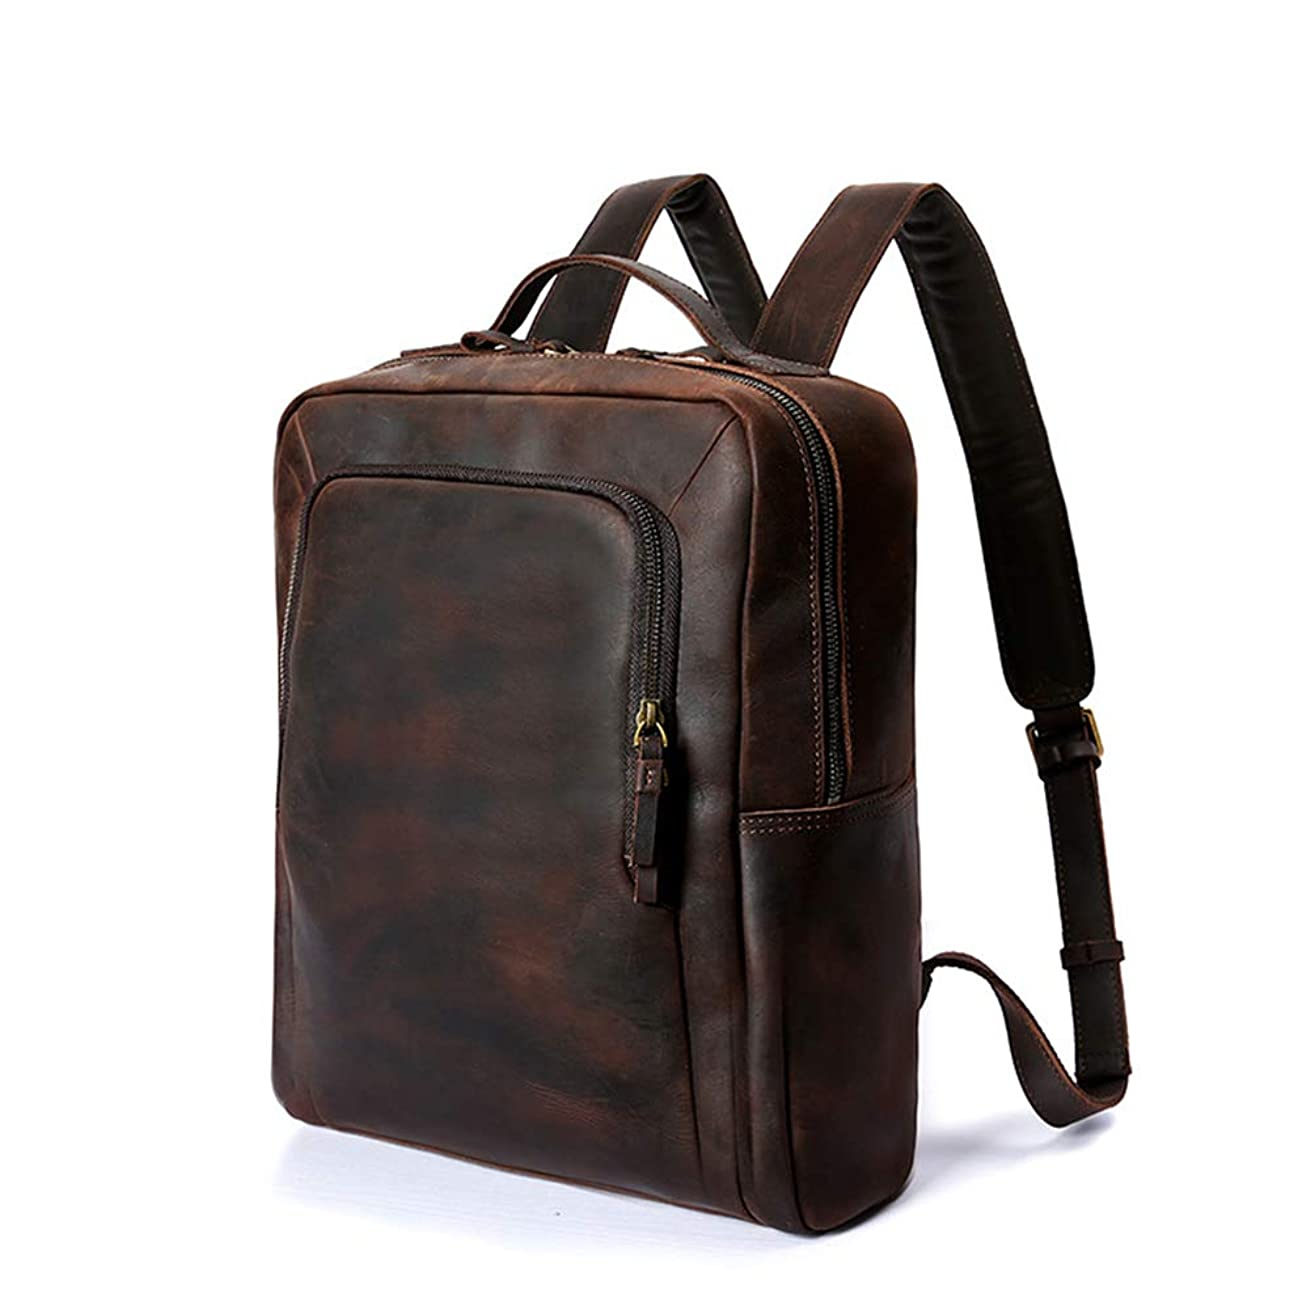 DCRYWRX Men's Leather Backpack, Large Daily Backpack 14 Inch Laptop Backpack Bag Men (Brown)